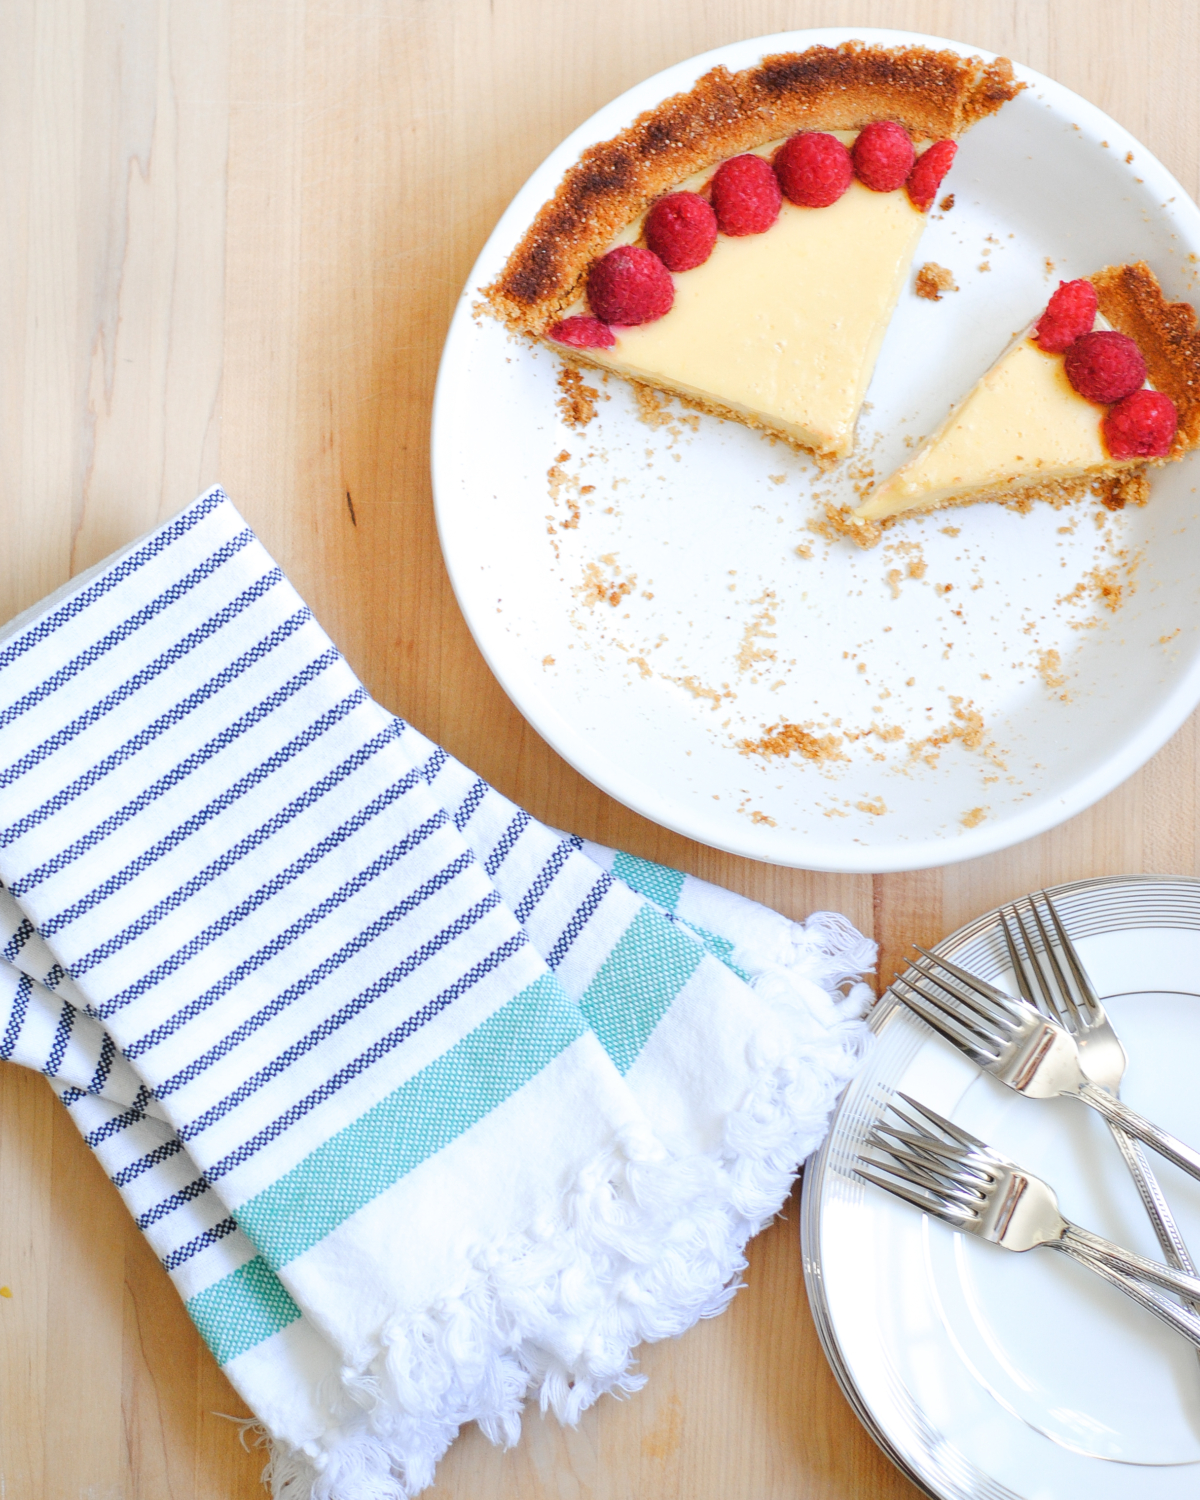 Perfect, classic key lime pie - everyone loves this dessert and it is so easy to make. A perfect summer dessert for any occasion.